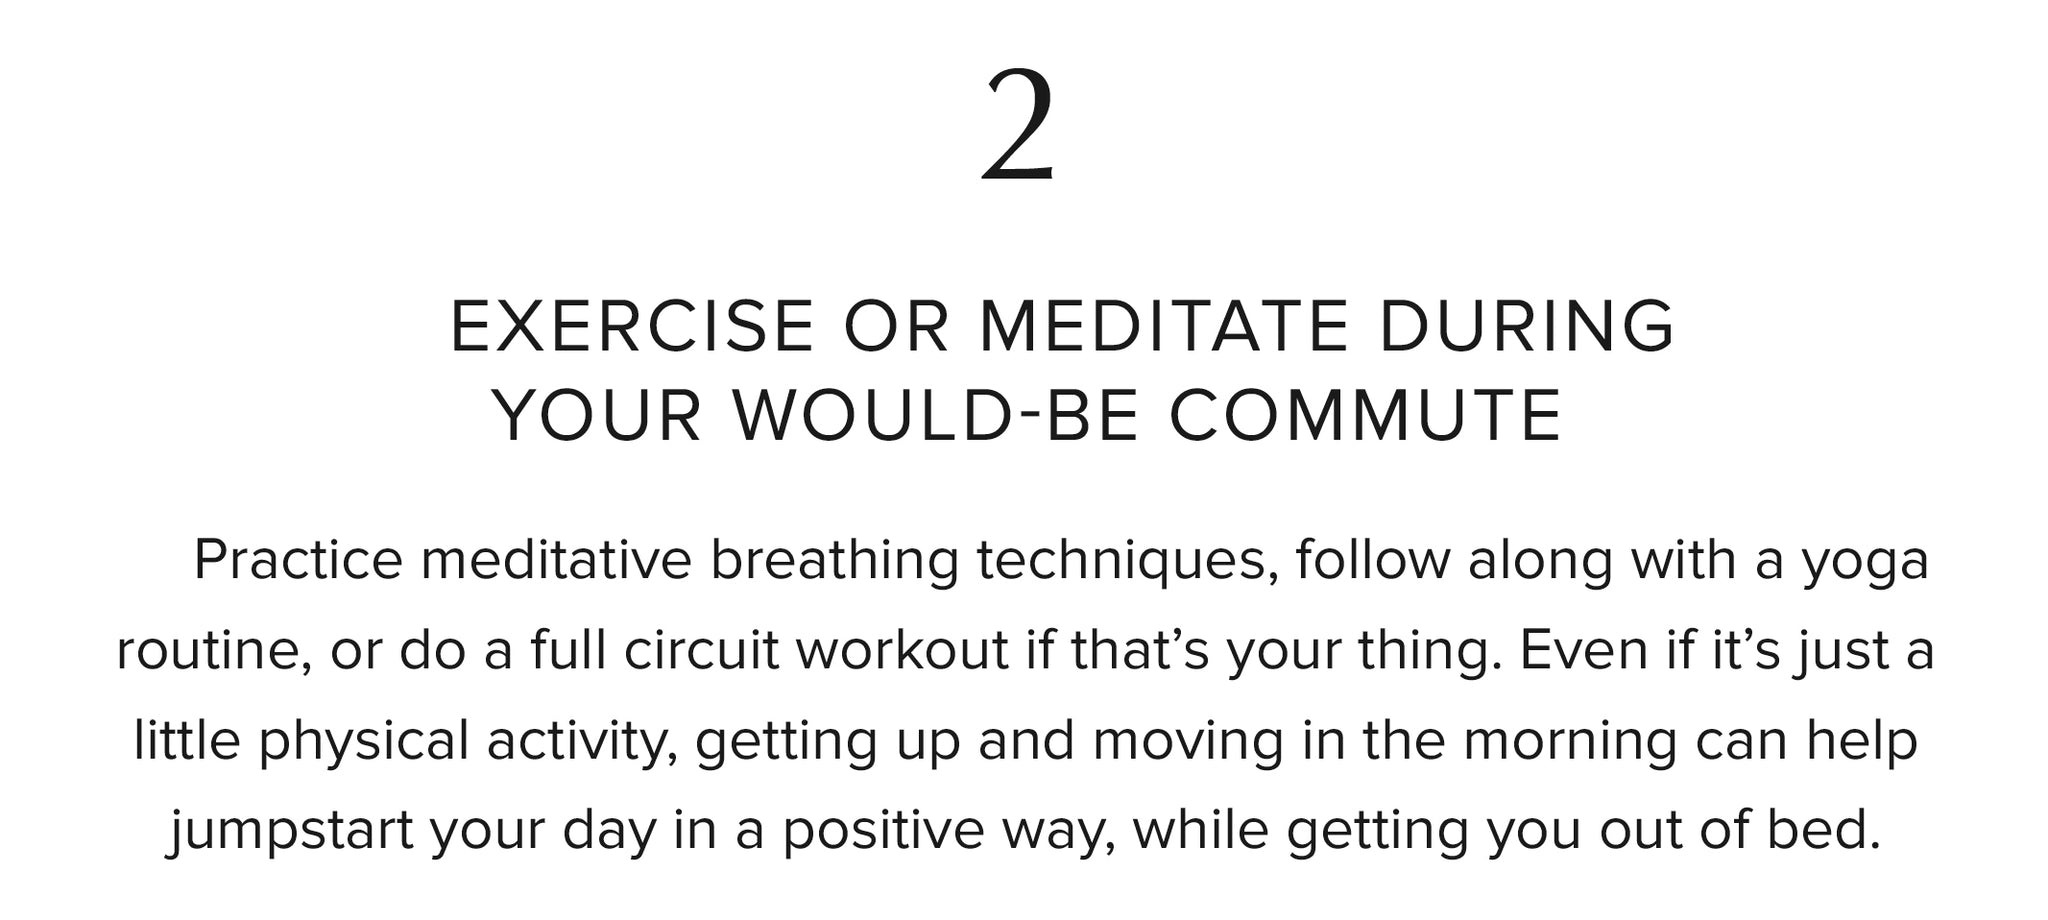 2. Exercise or meditate during your would-be commute